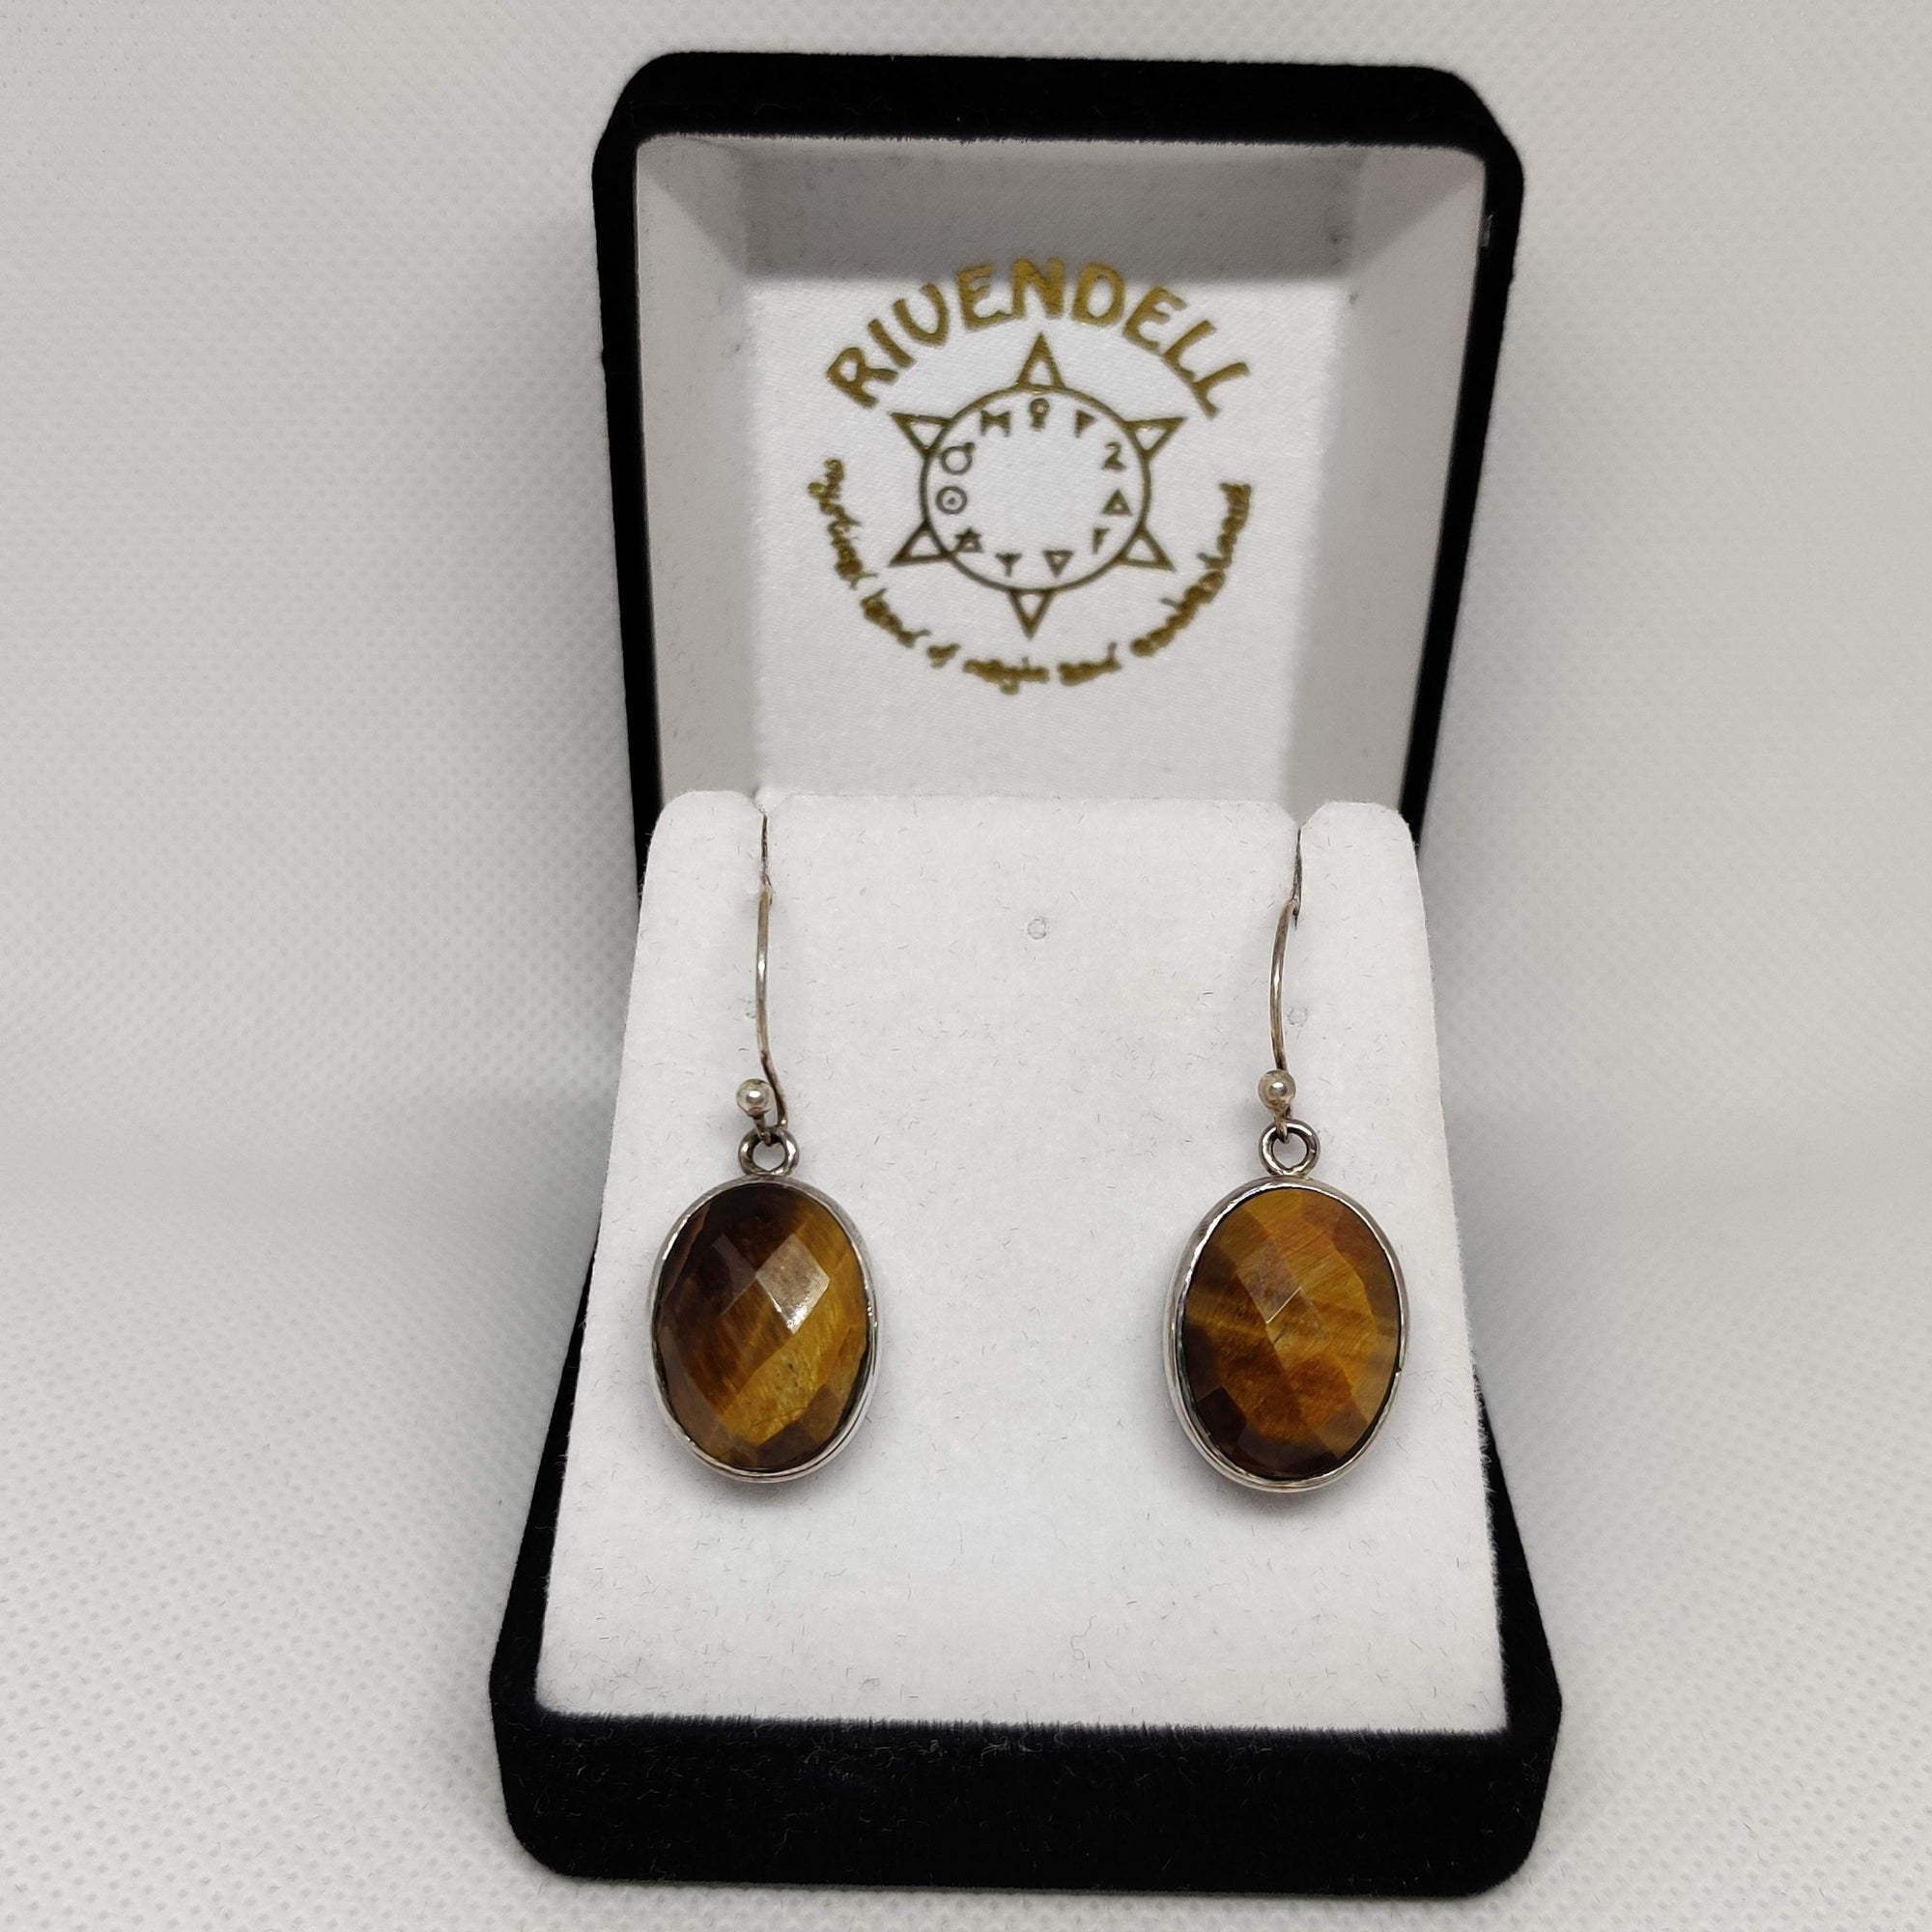 Oval Diamond-Cut Tiger's Eye 925 Sterling Silver Earrings - Rivendell Shop